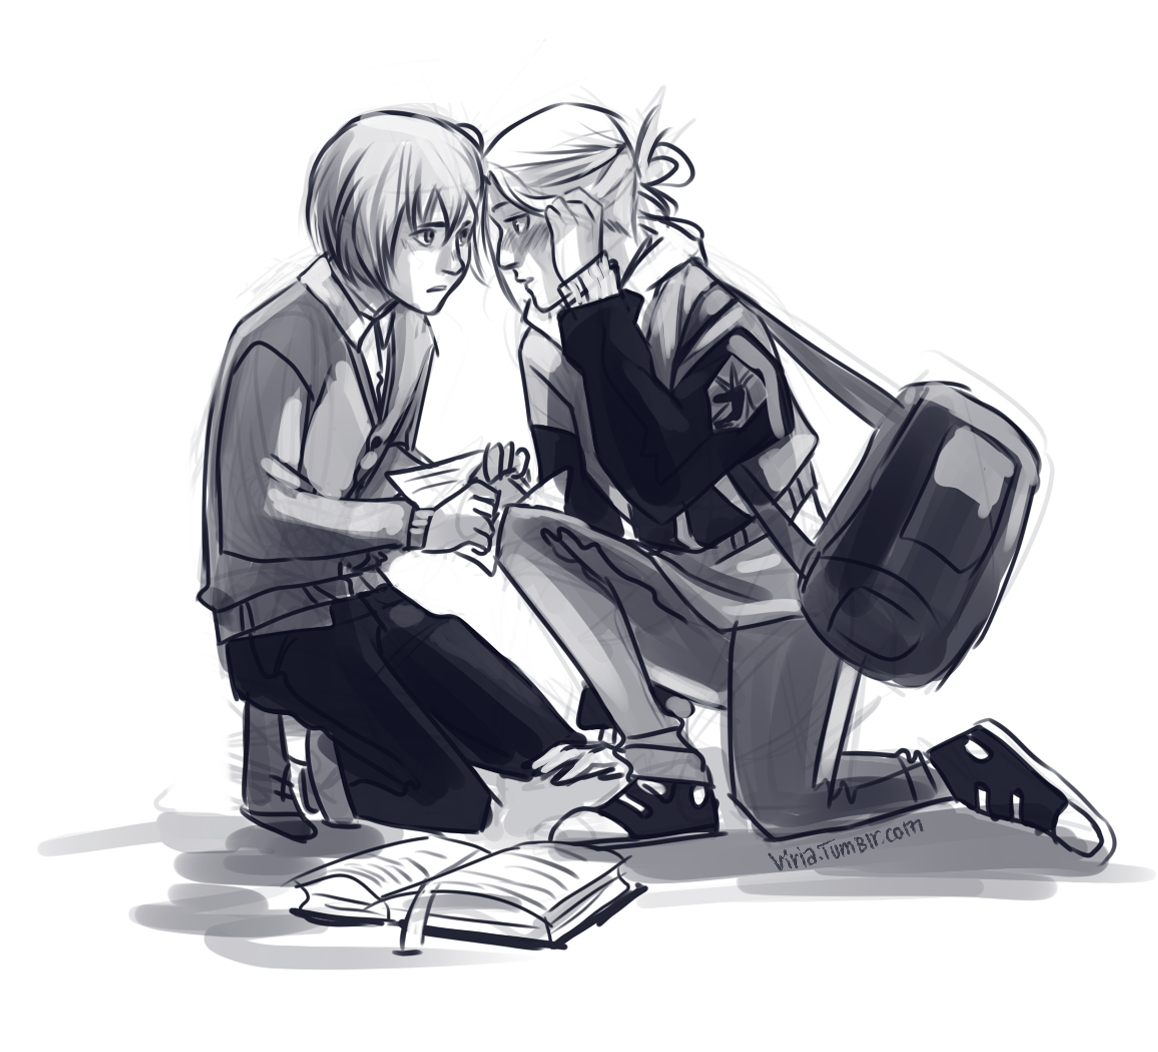 That's rough, buddy. Armin and Annie! Seriously, I don't ship them, but for some reason fan art that includes both of them makes me happy.